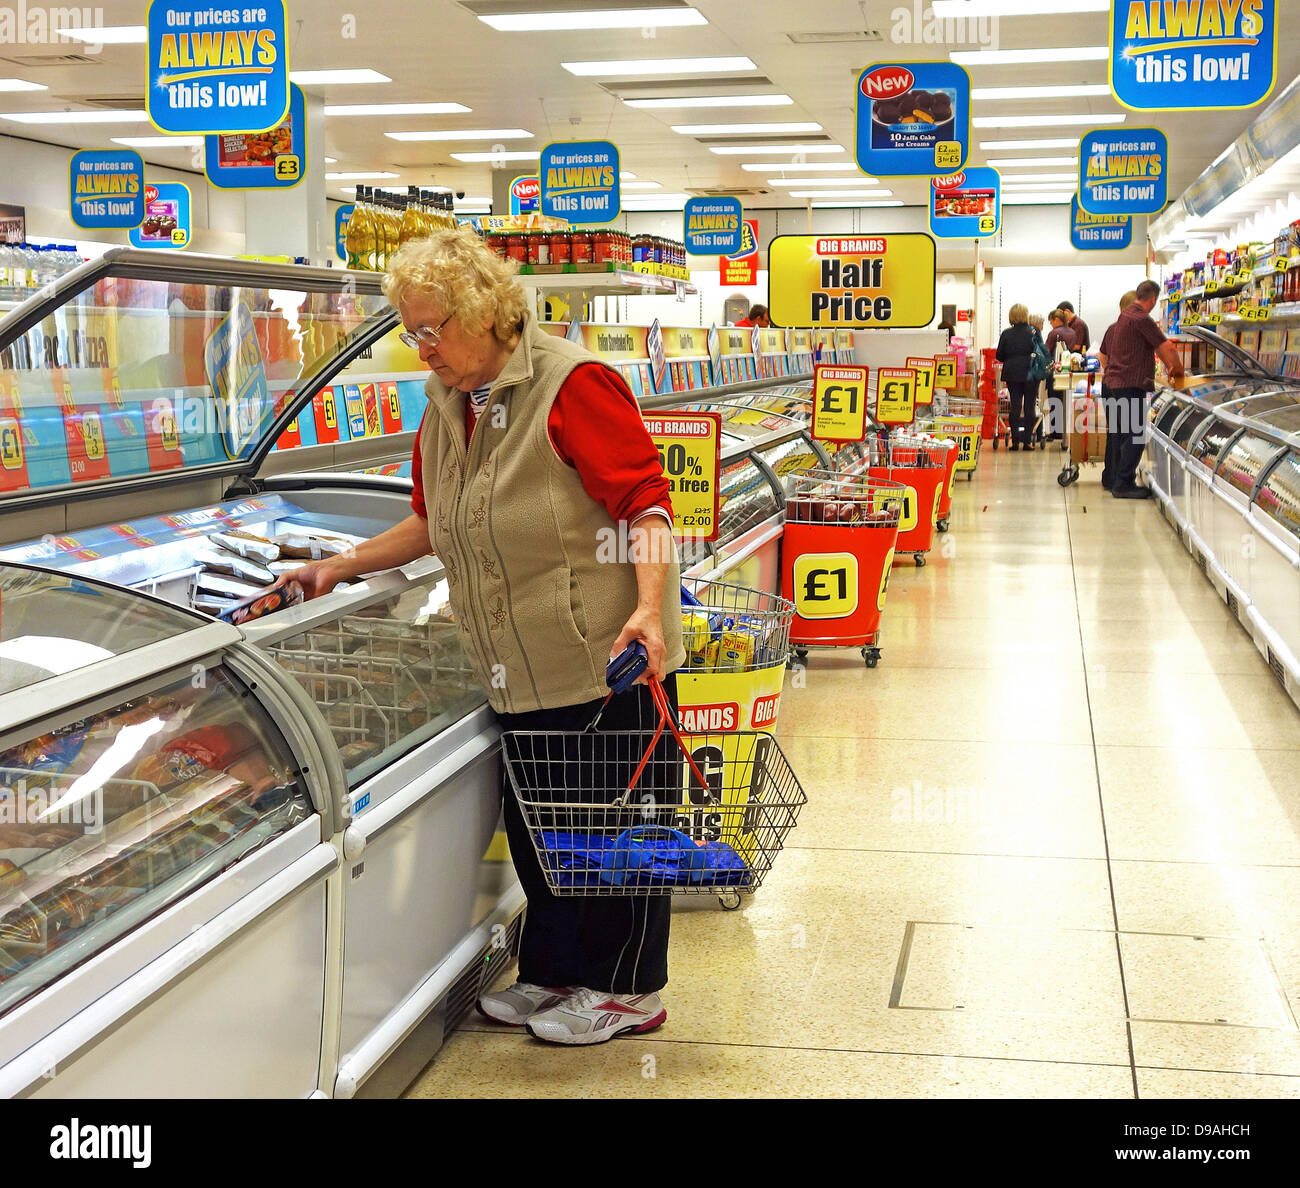 An elderly woman shopping in an iceland store, uk - Stock Image